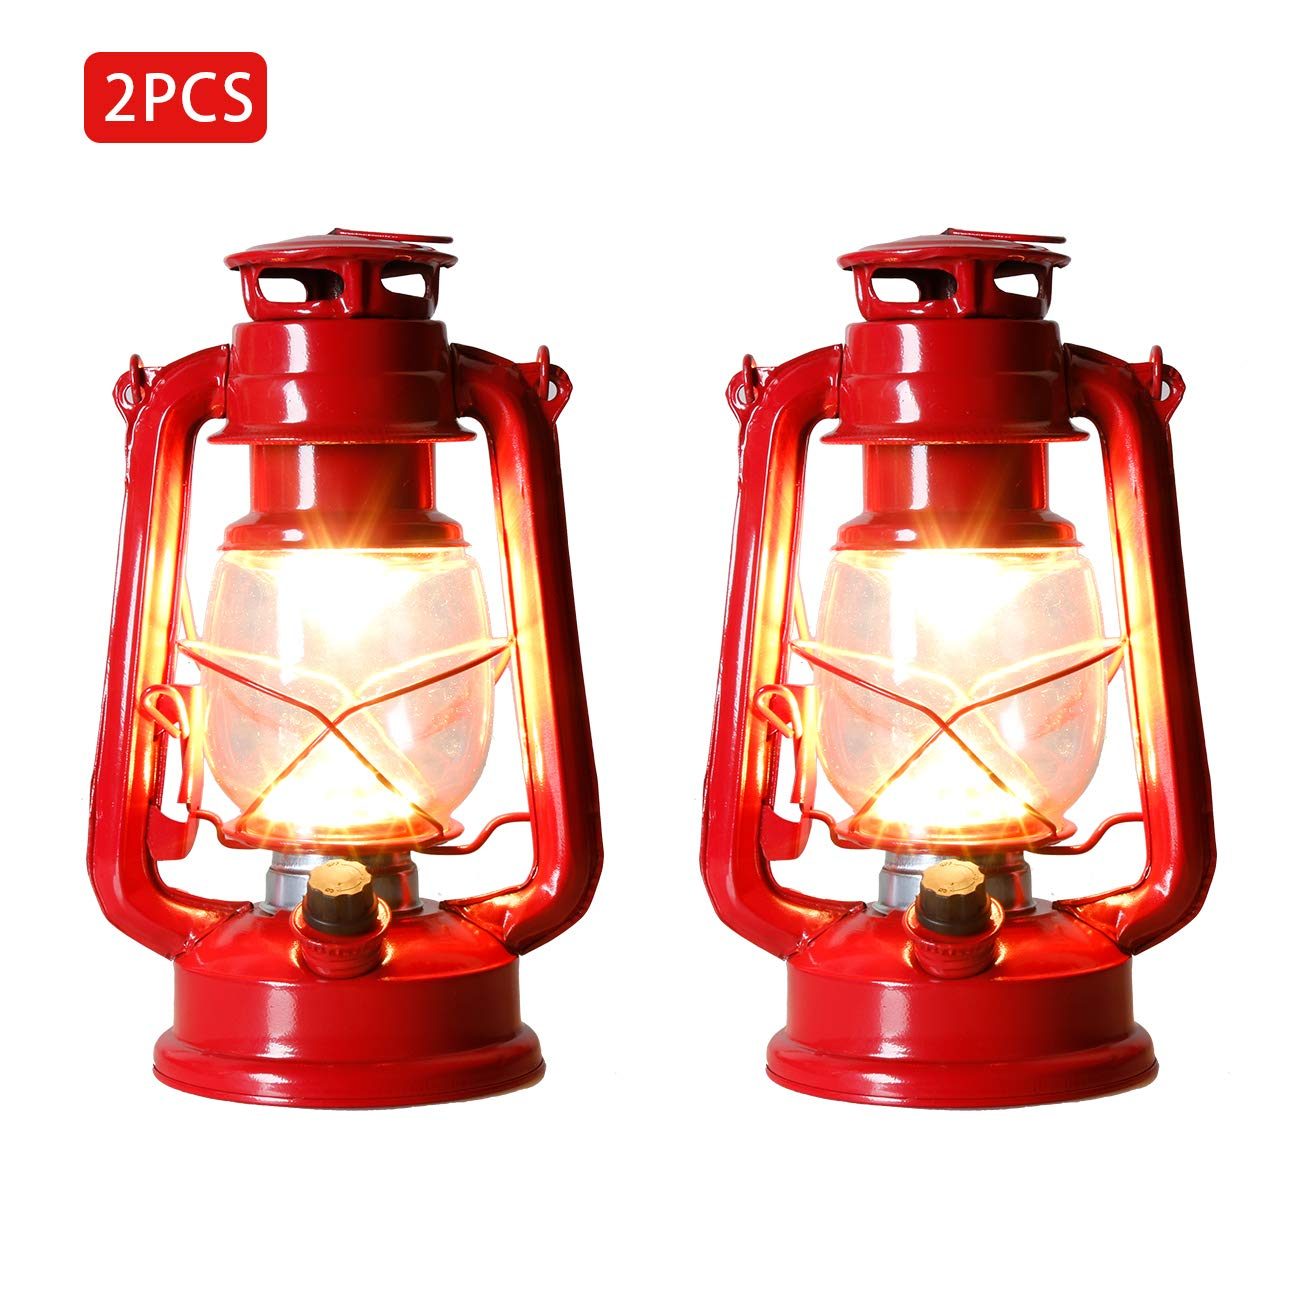 Set of 2-EAMBRITE 9 Inch LED Outdoor Traditional Look Lantern with efficient LED Lighting